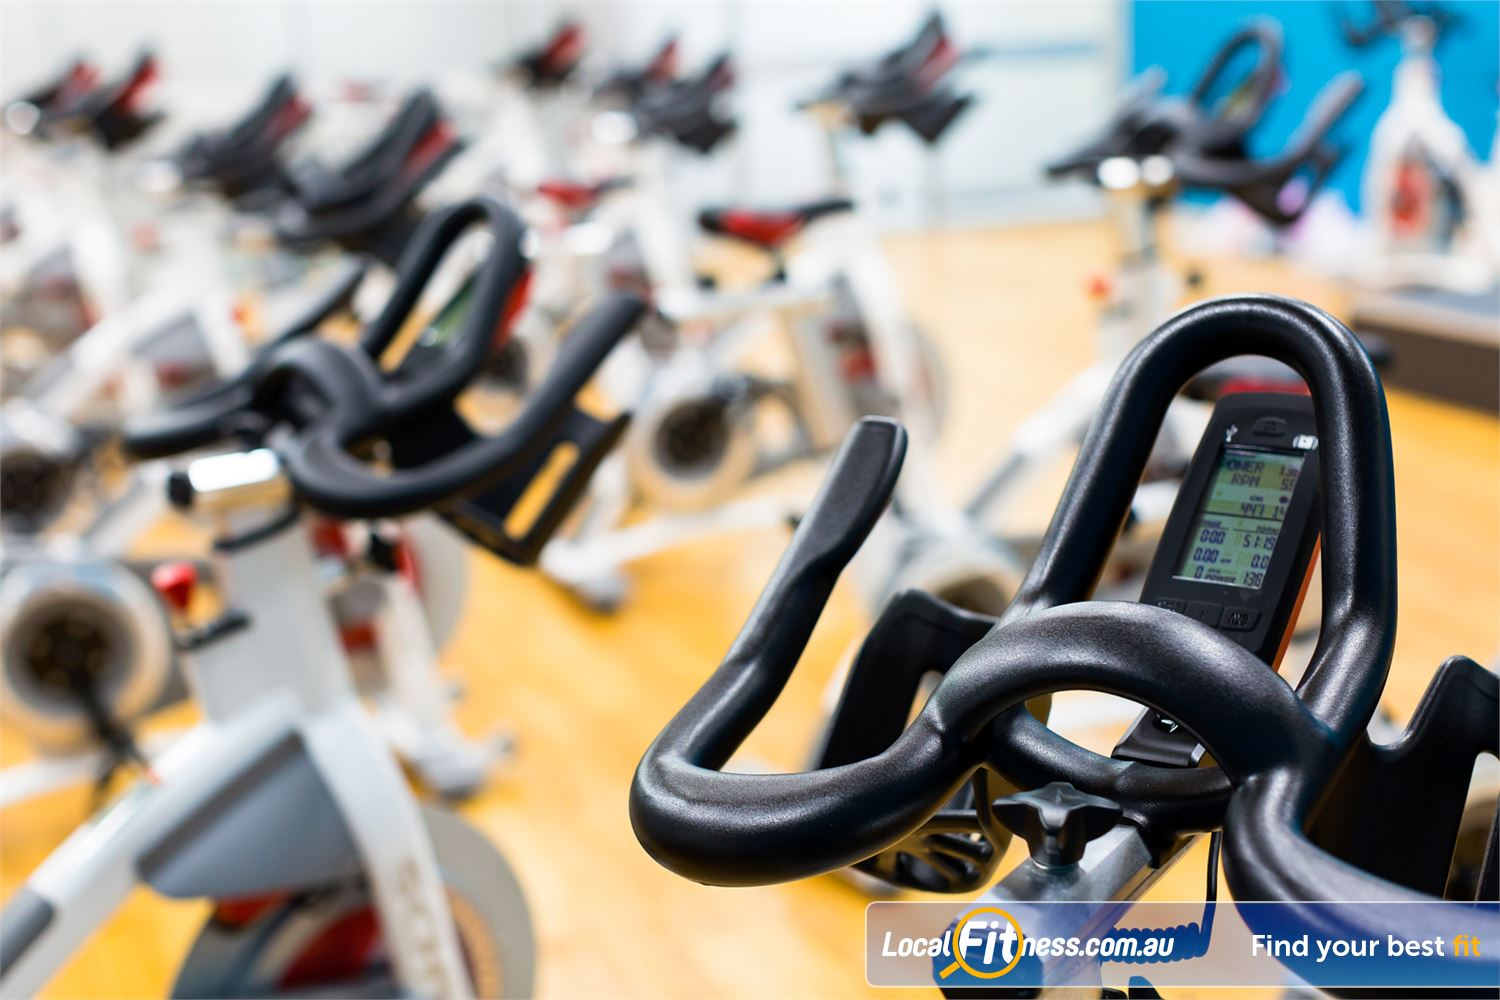 Reservoir Leisure Centre Near Thomastown Popular Reservoir cycle group fitness classes running daily.